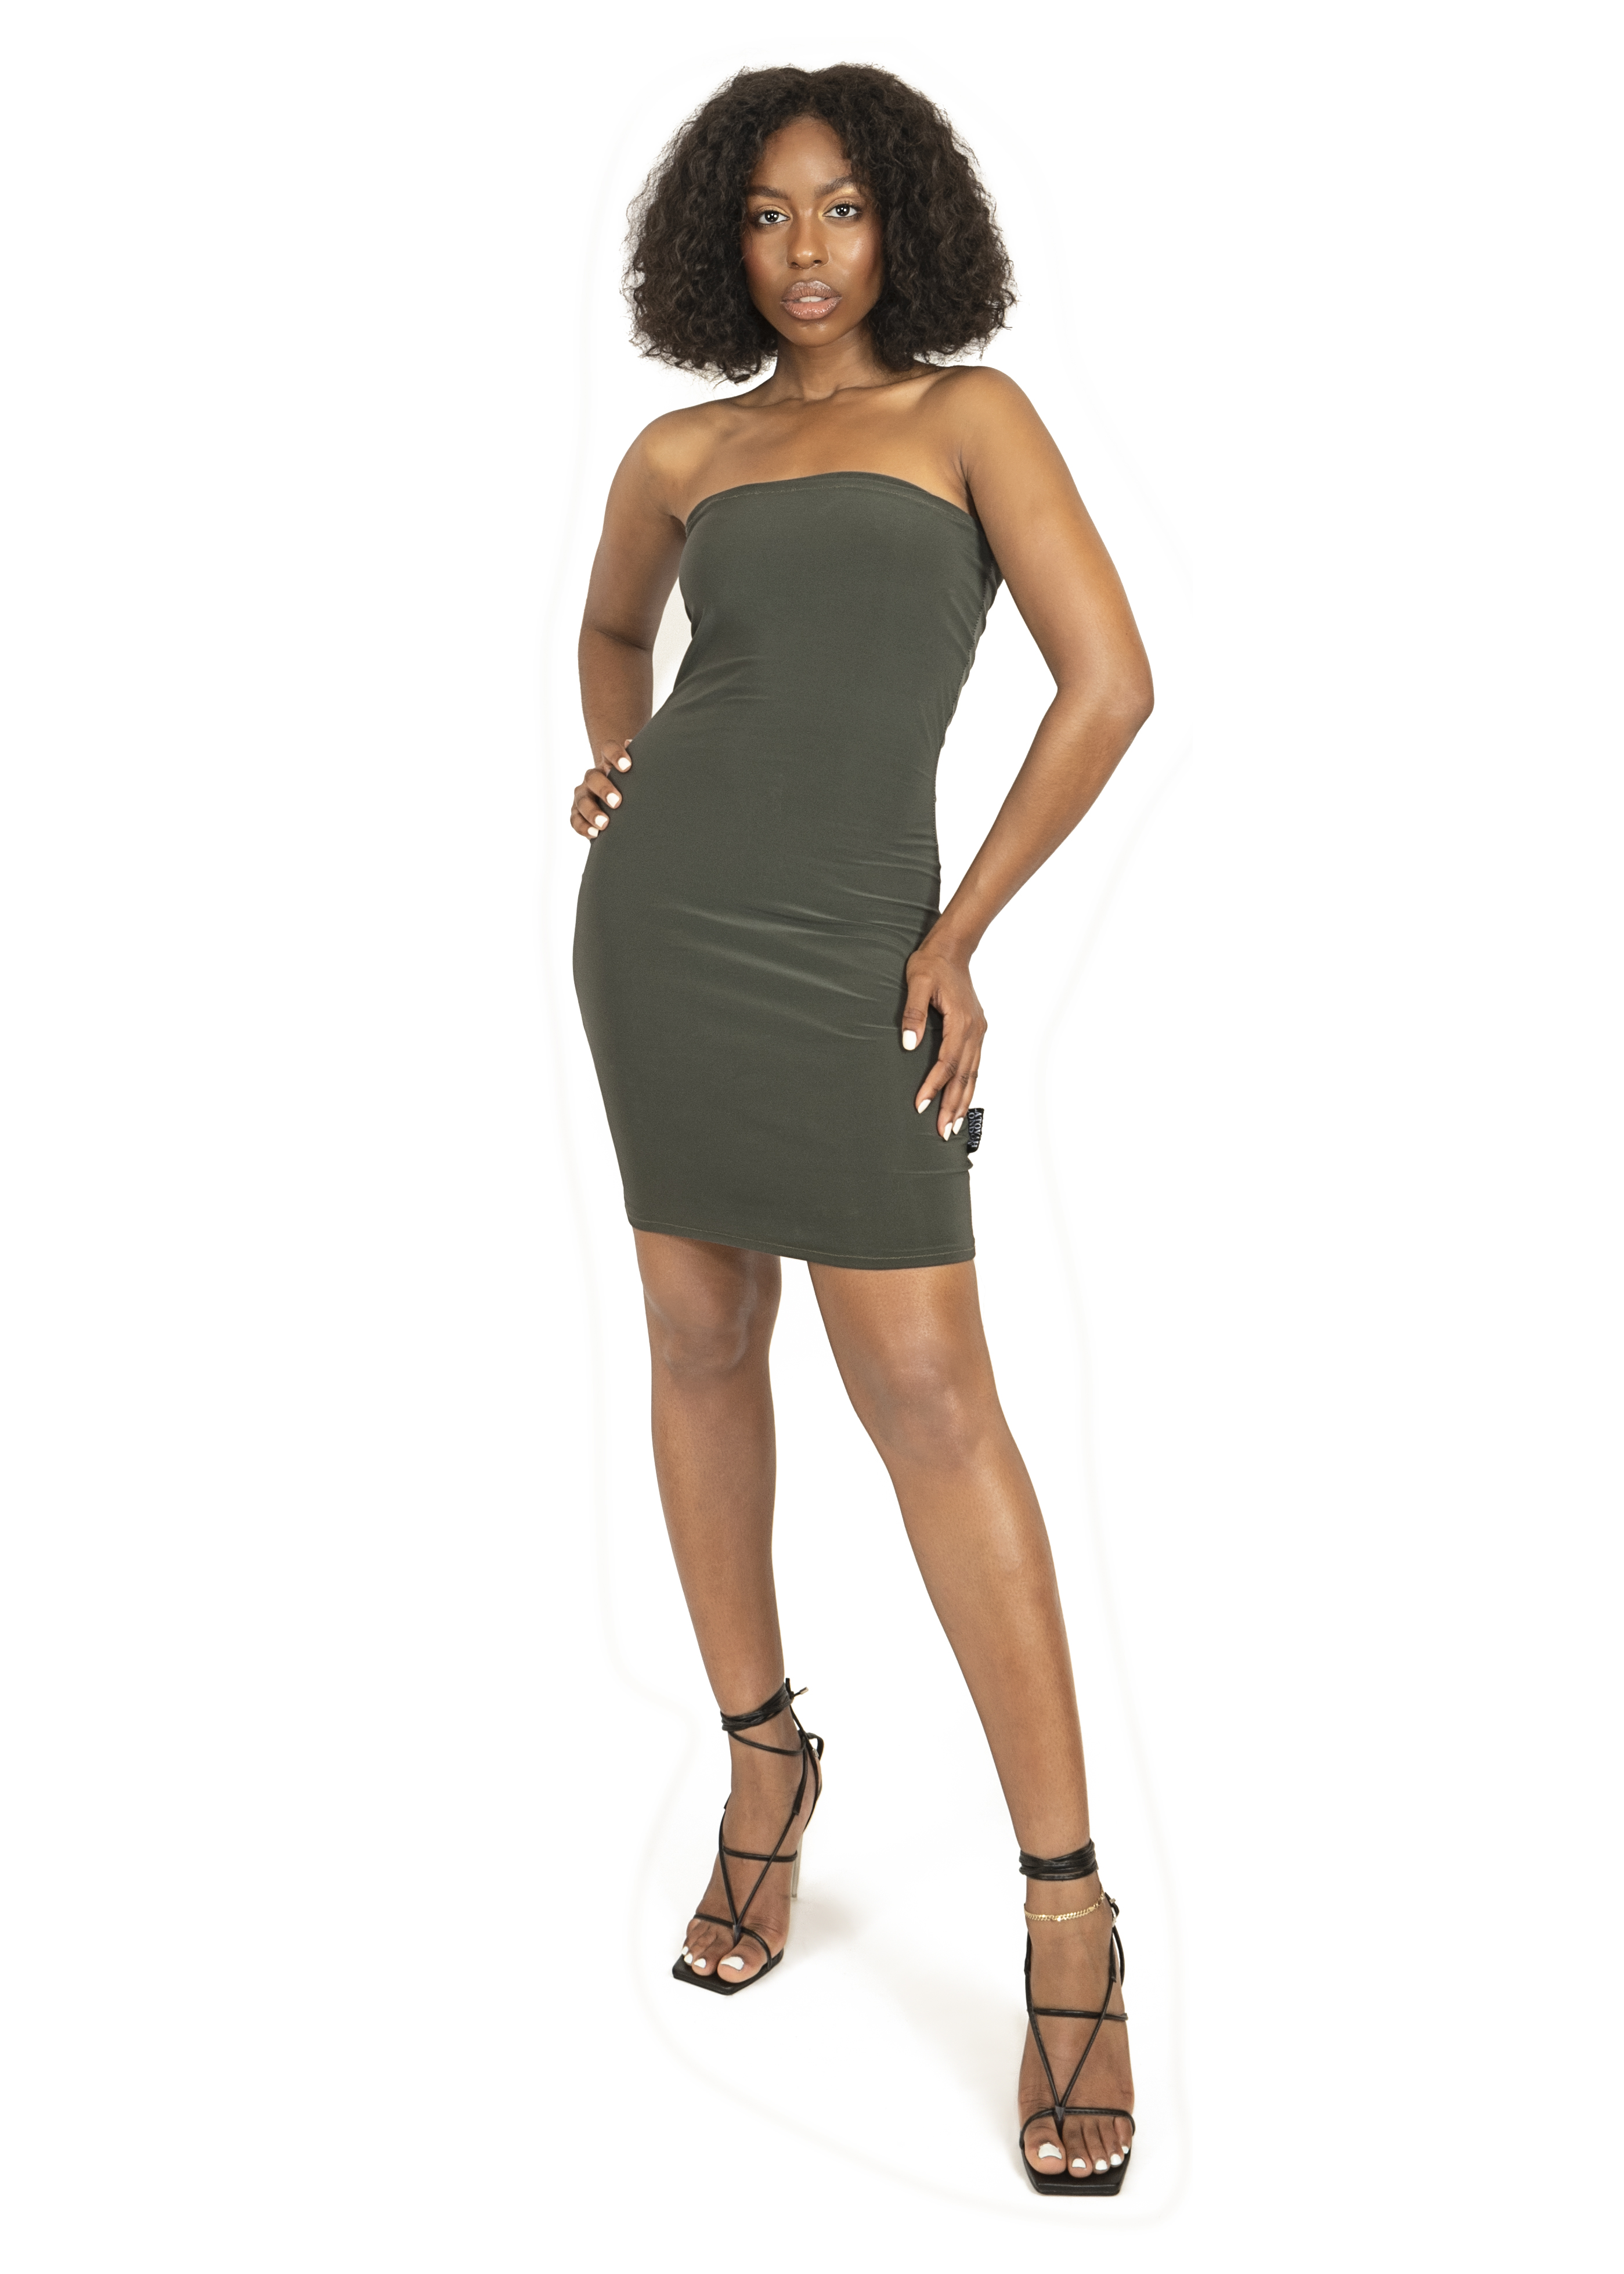 Dress_cloths_garments_product_photos_with_model_16